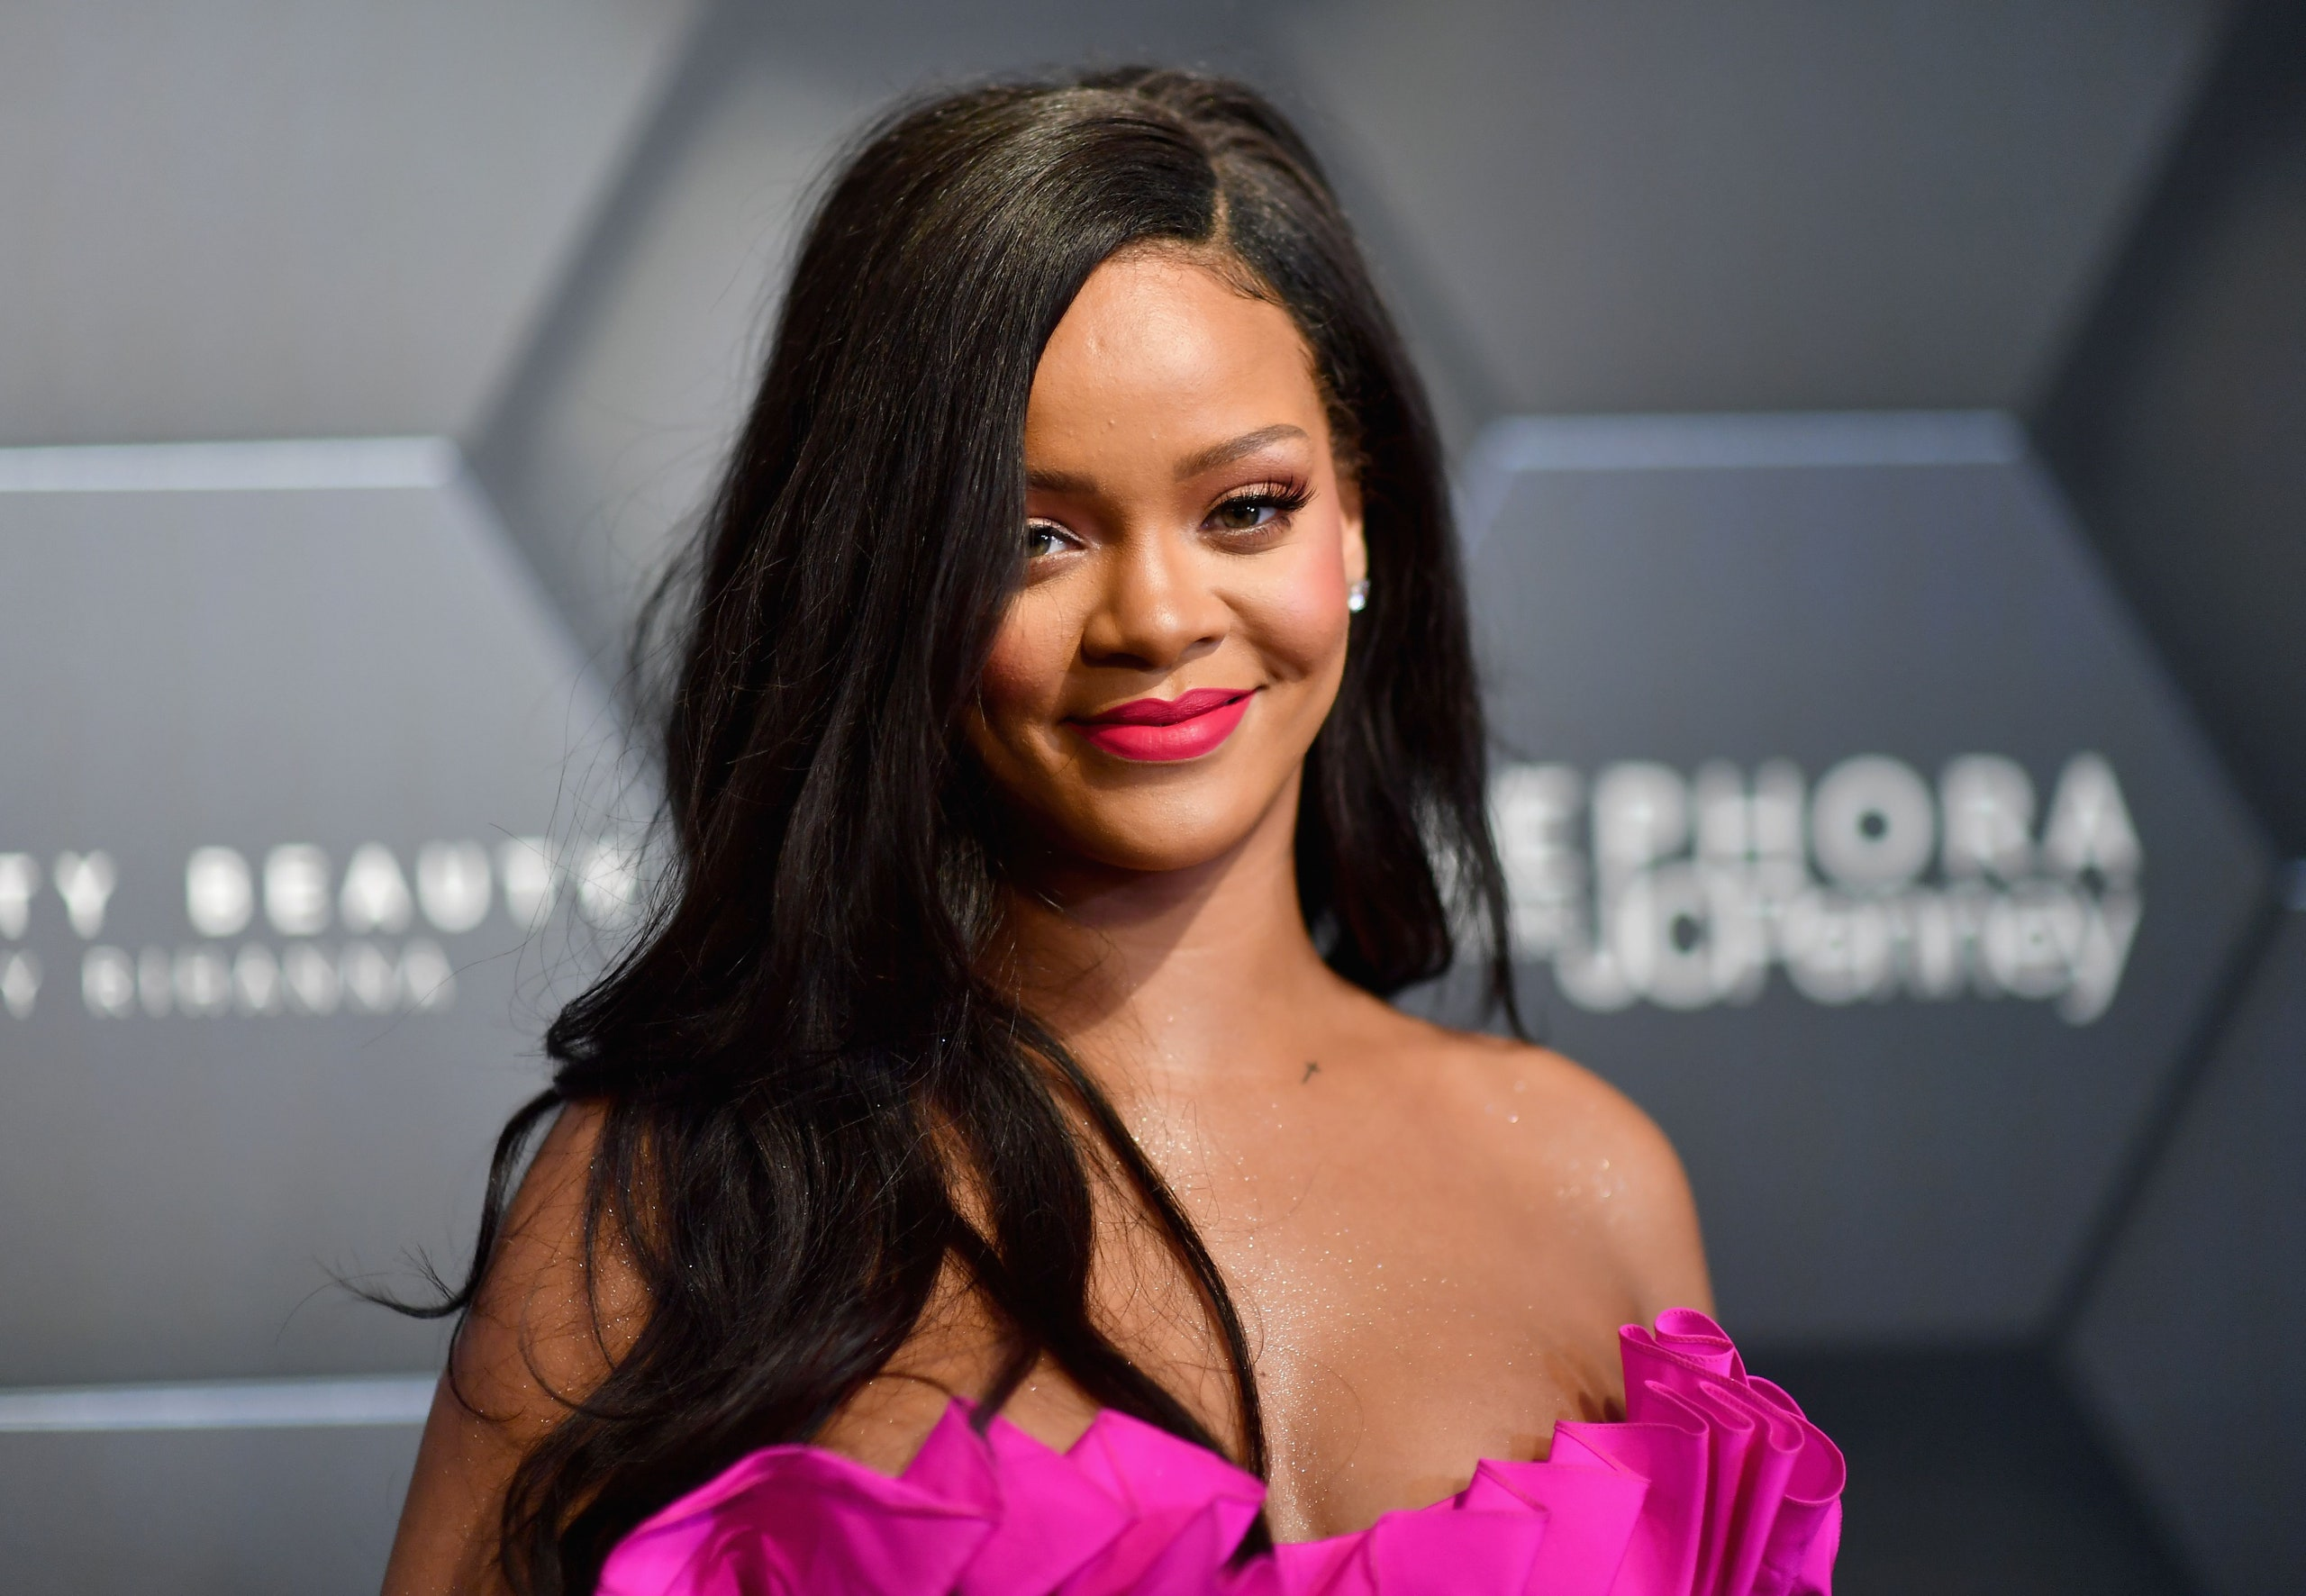 Rihanna Named a Billionaire 'richest female musician' by Forbes